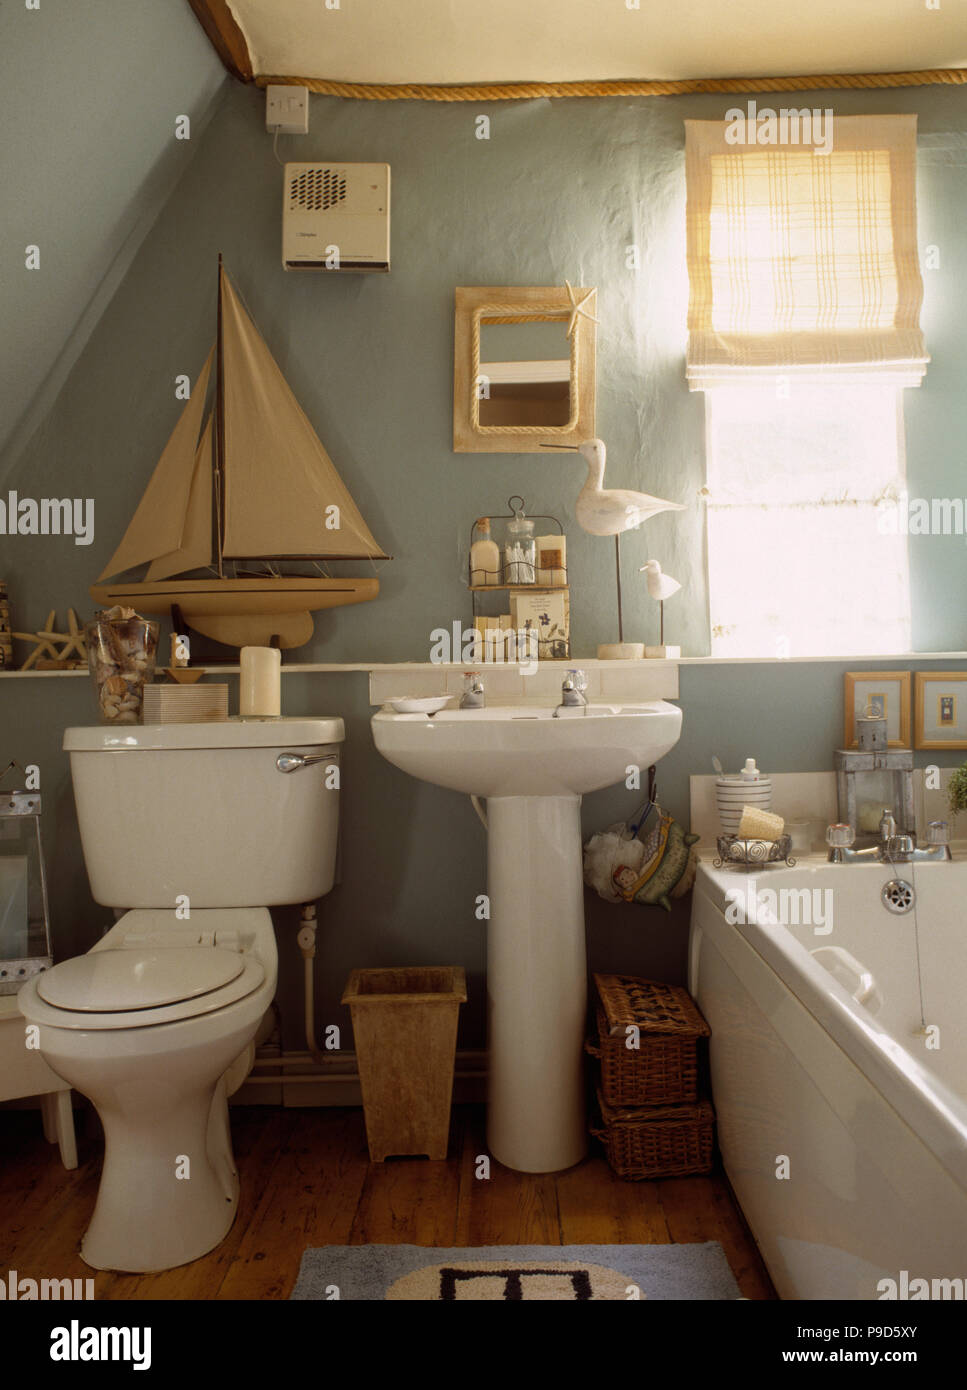 Model Sailing Boat On Shelf Above Toilet And White Pedestal Basin In  Blue Grey Cottage Bathroom With Cream Blind